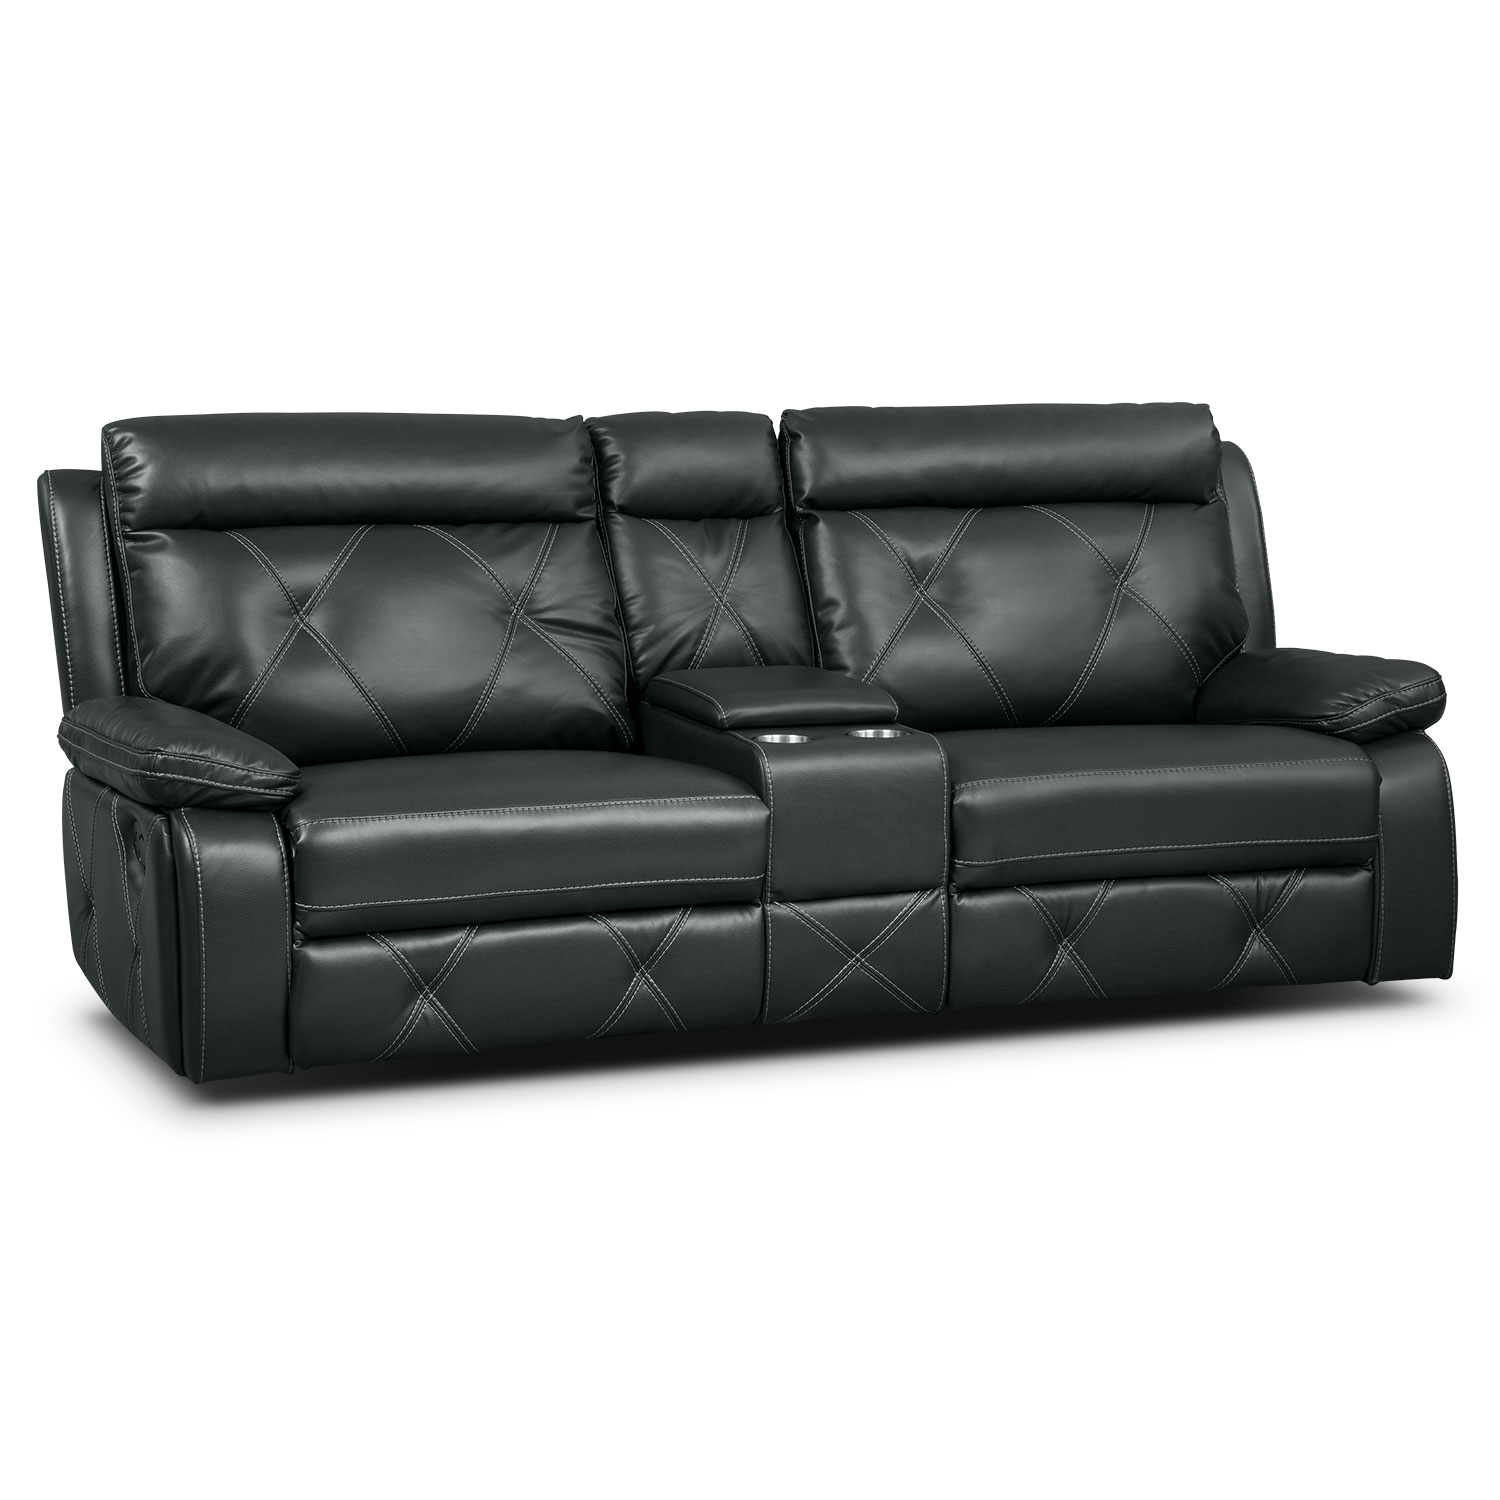 Dante Charcoal 3 Pc. Reclining Sofa with Console